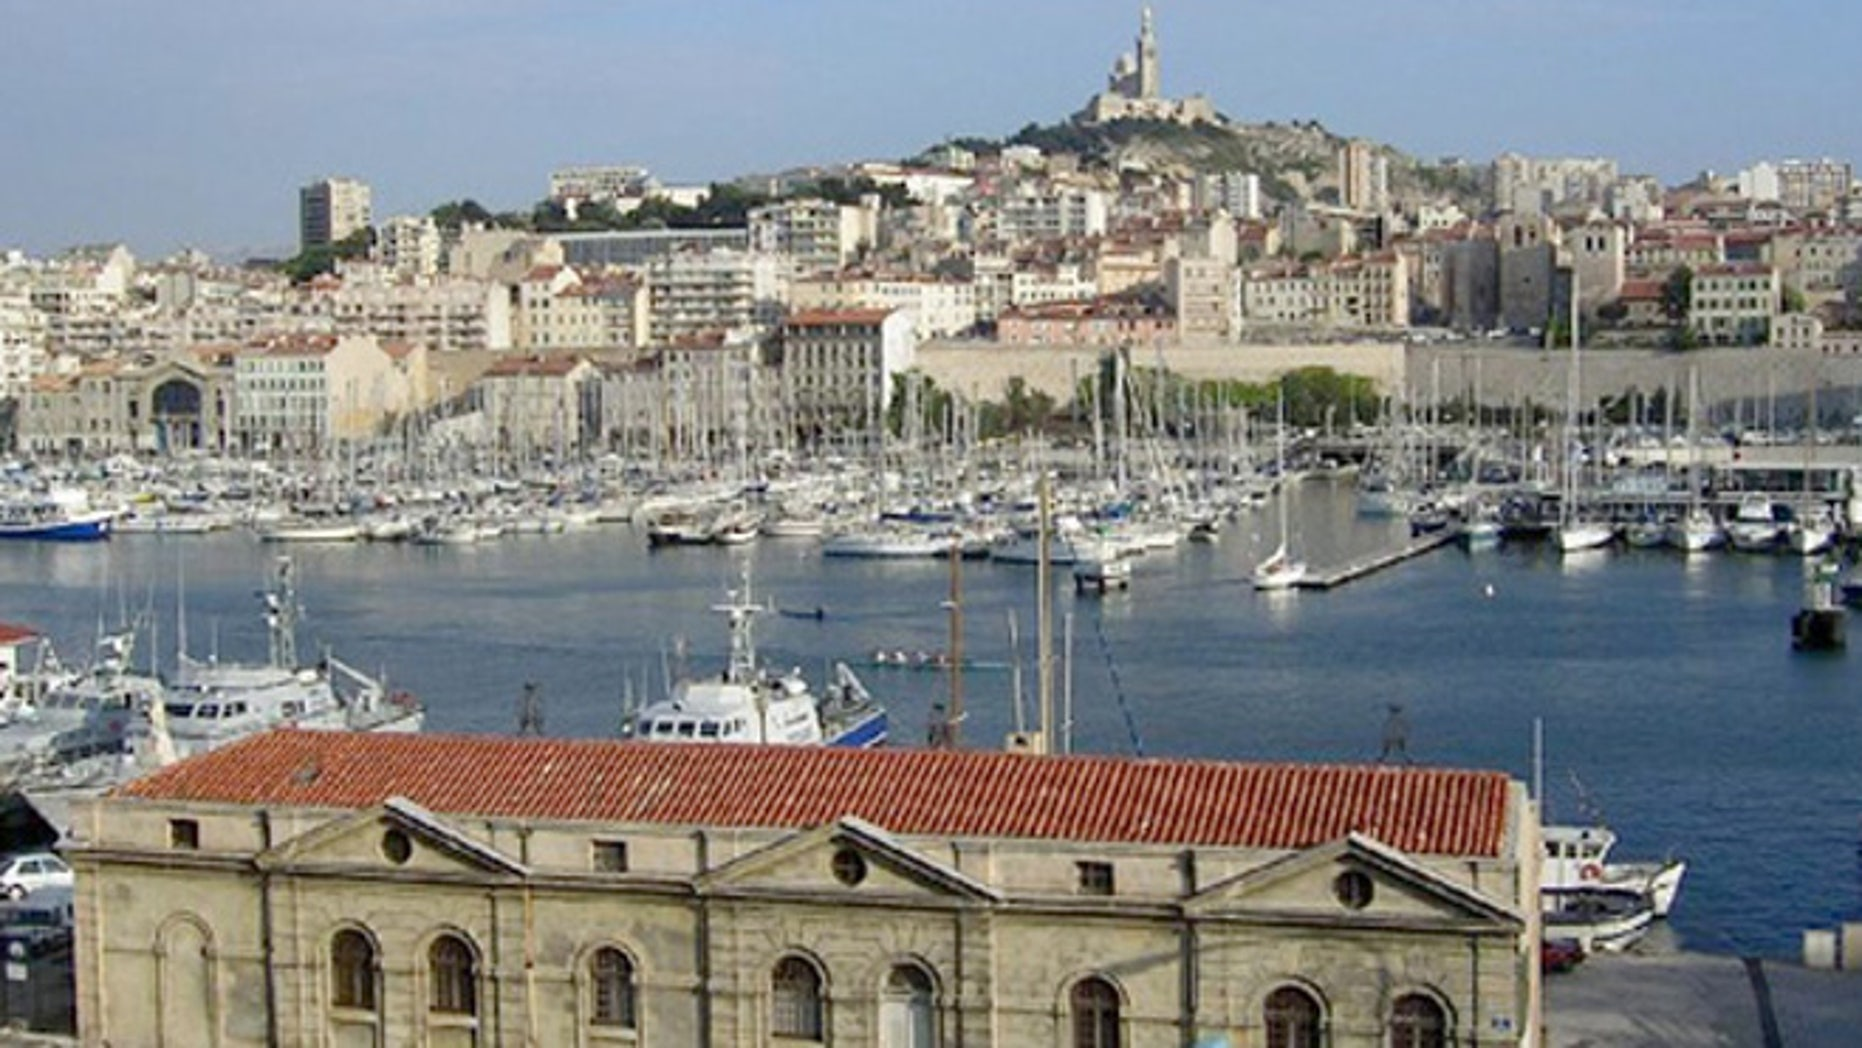 Marseille, founded 2600 years ago, the oldest city in France.  According to a recent survery, France is the rudiest nation to visit.